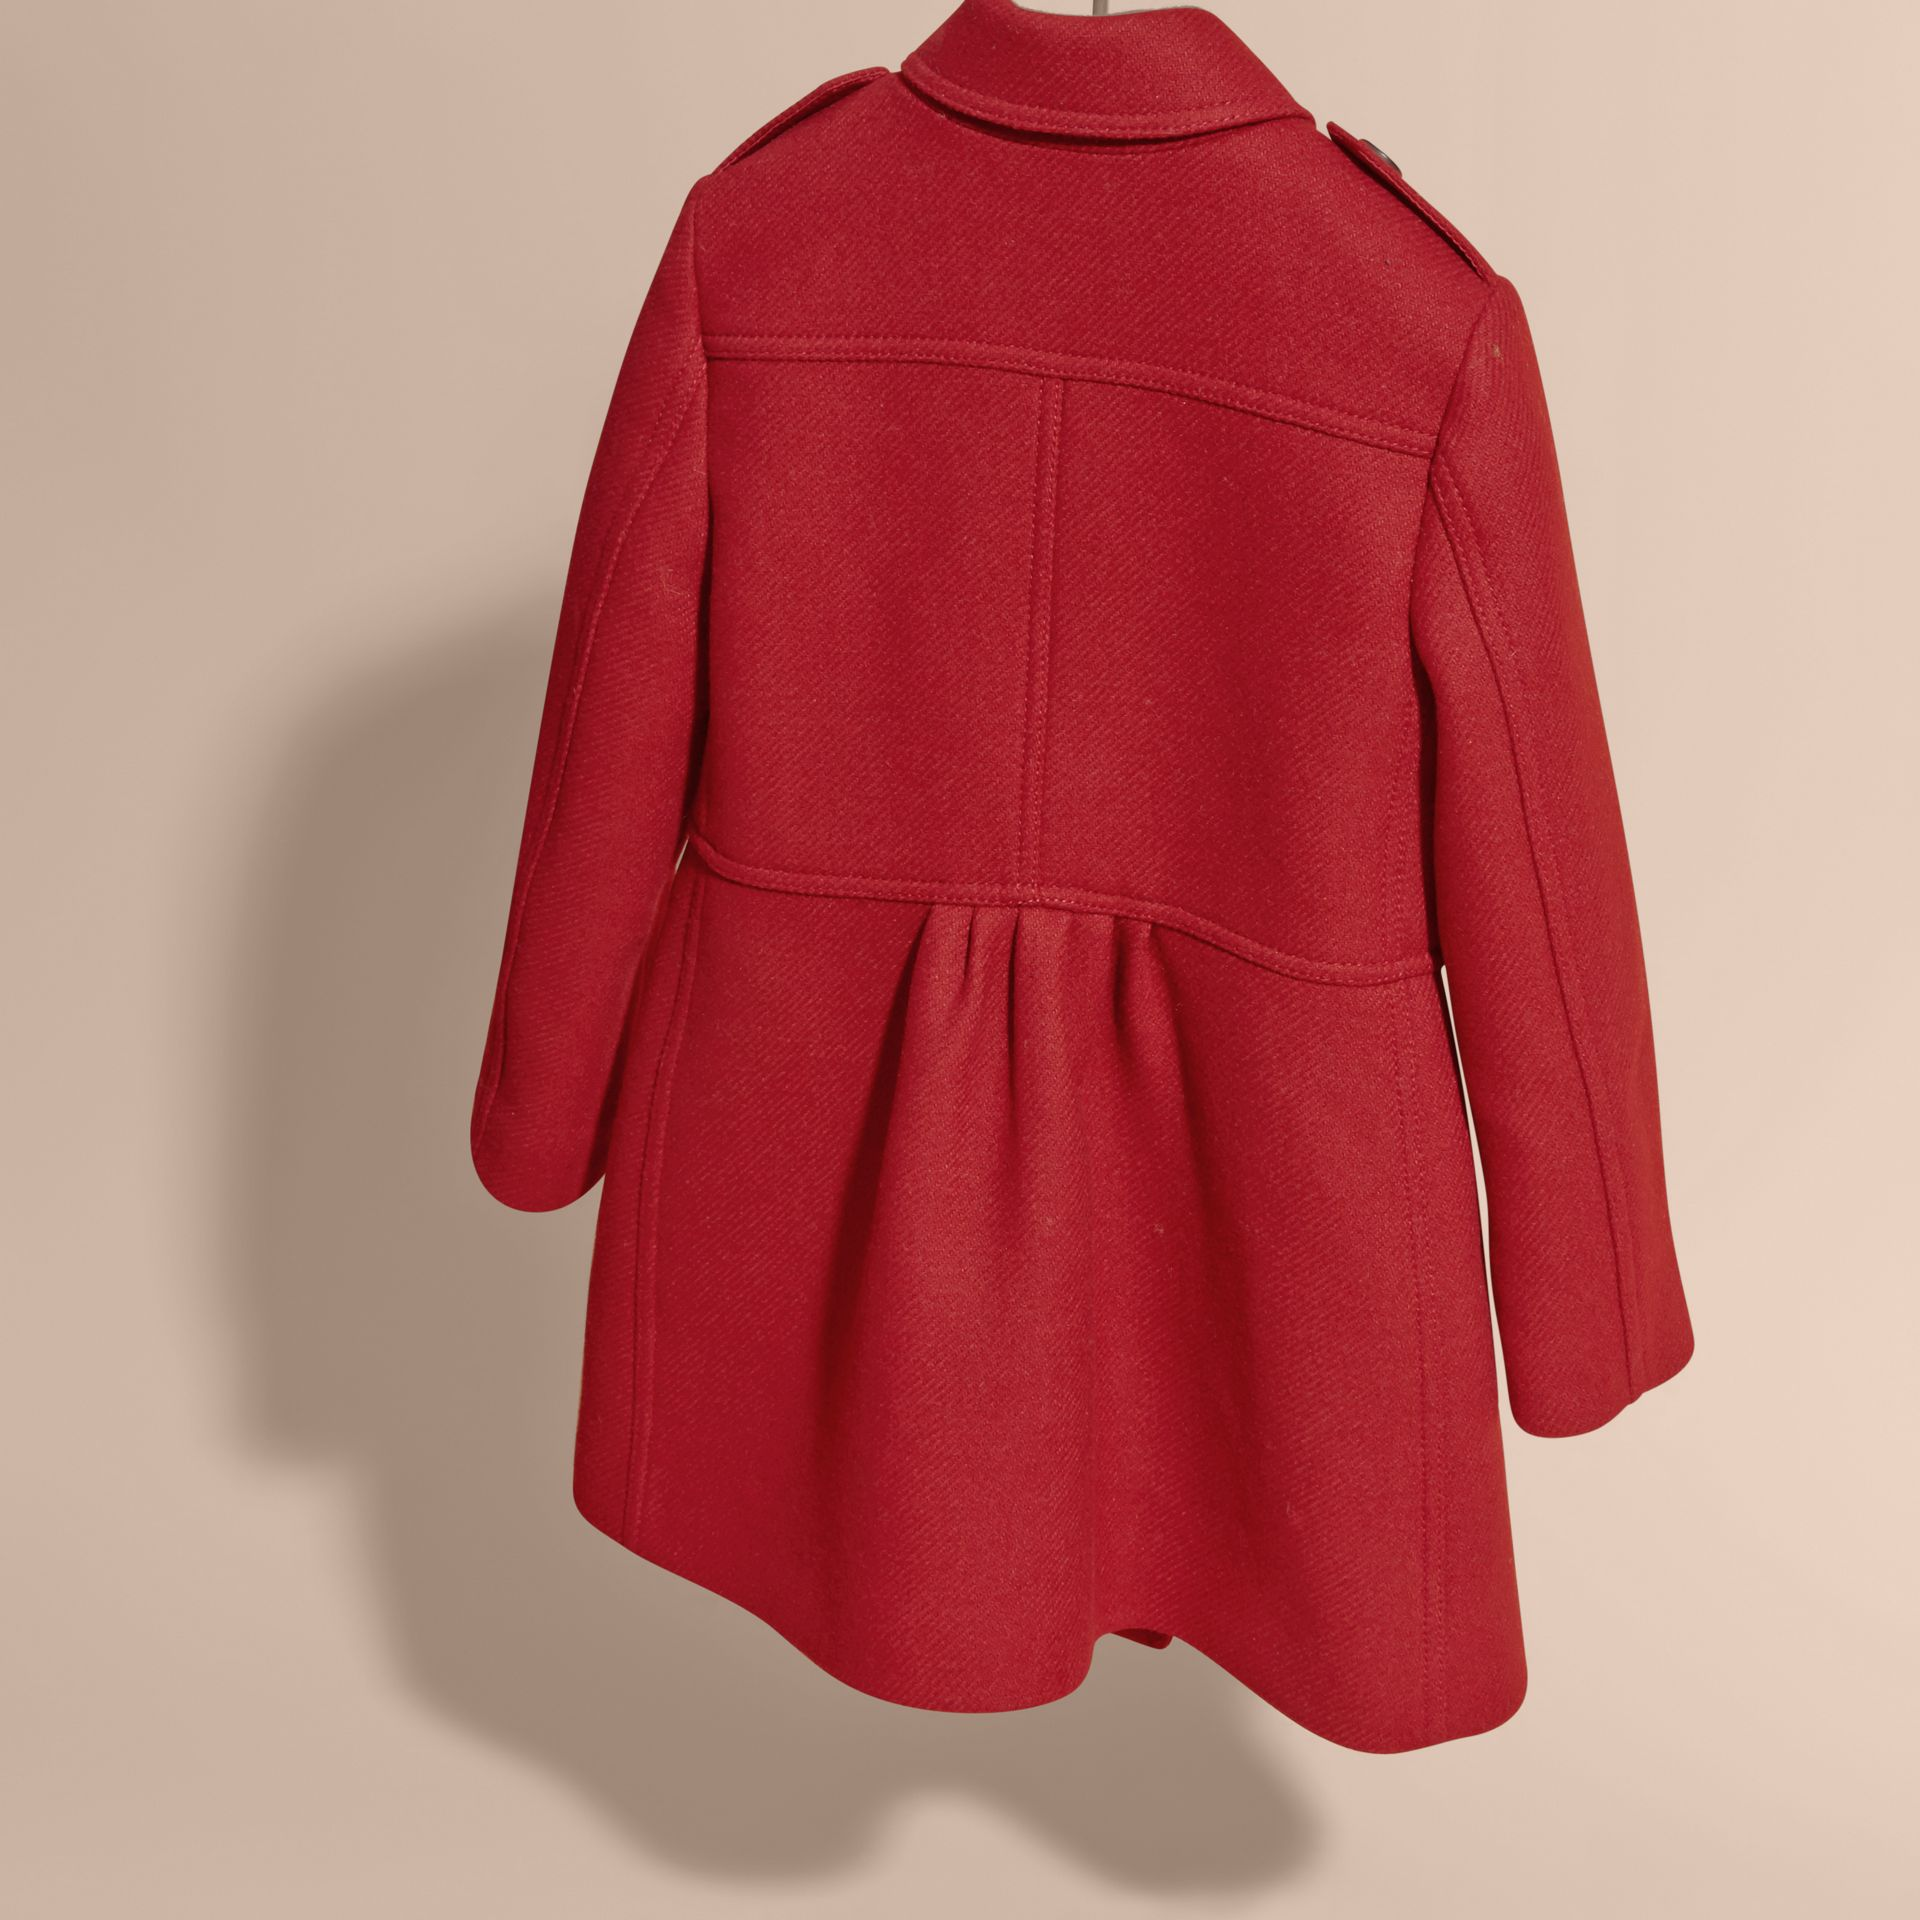 Tailored Wool Cashmere Blend Coat - gallery image 4